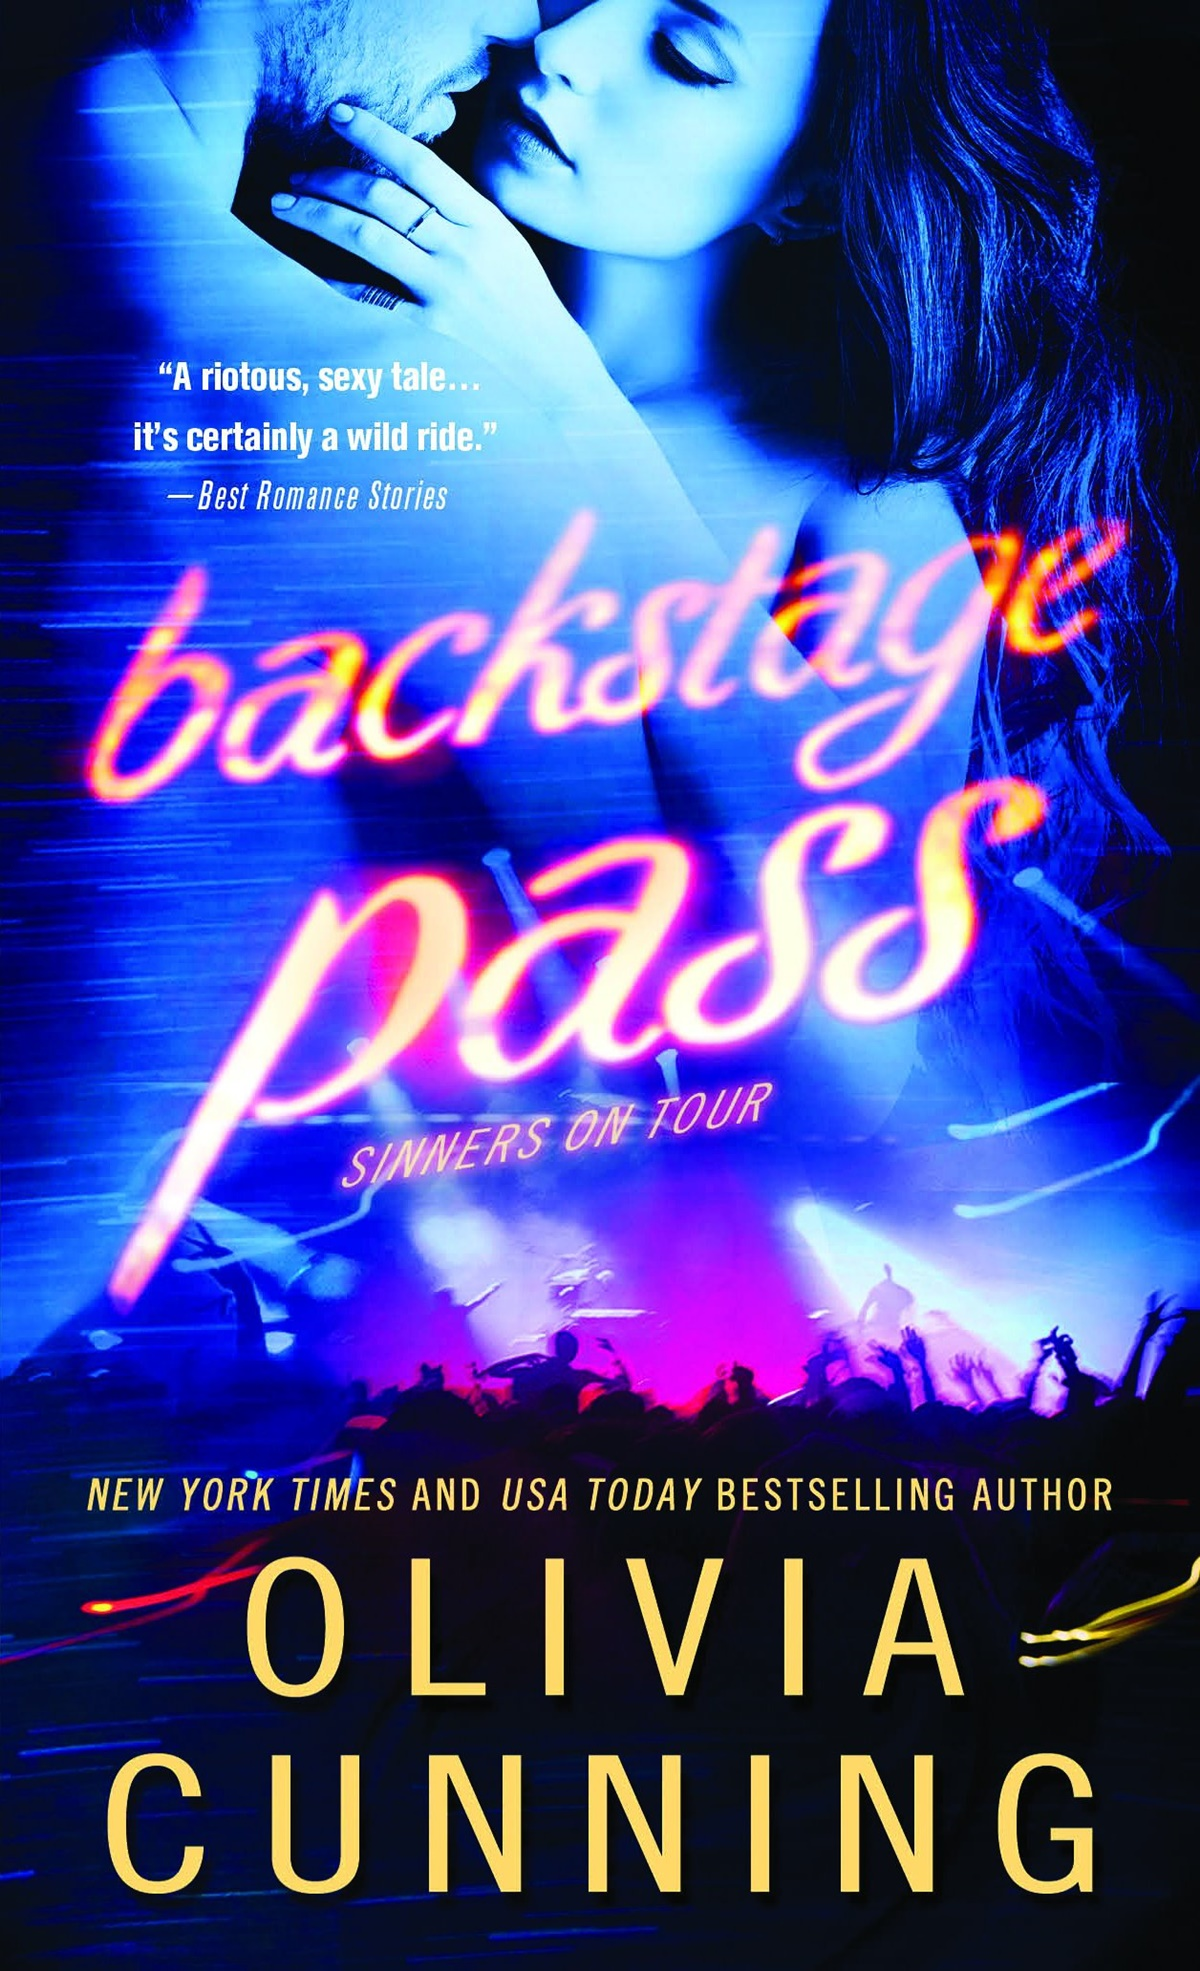 Rockr Romance Novels, Backstage Pass by Olivia Cunning, books